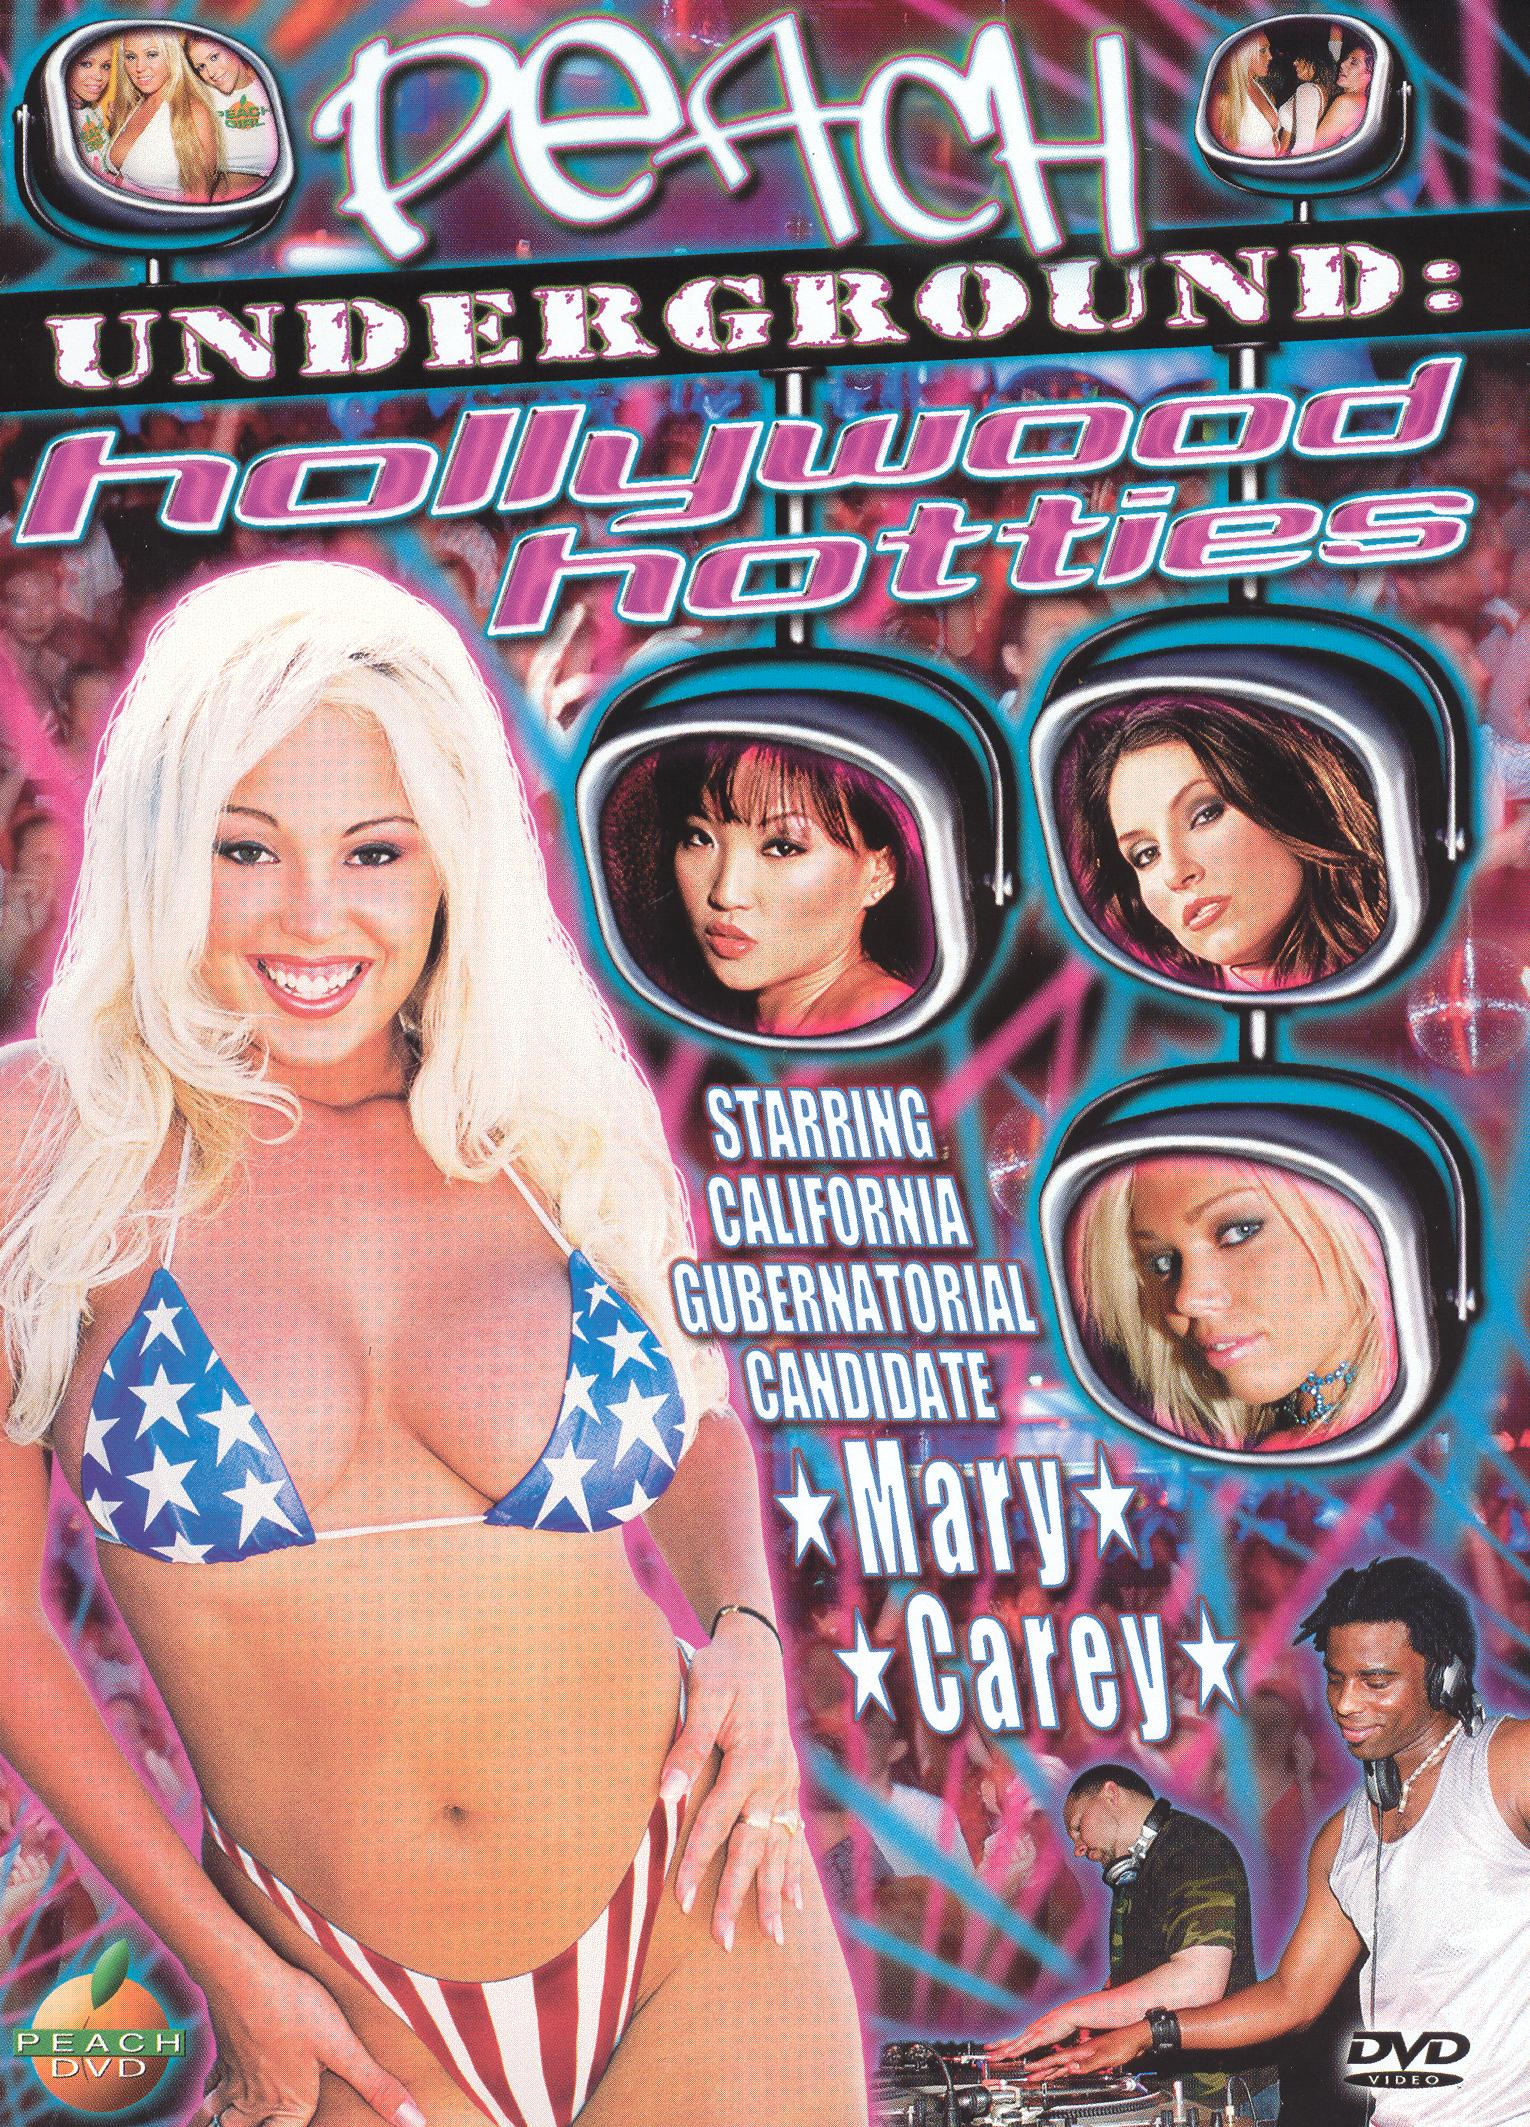 Peach Underground: Hollywood Hotties